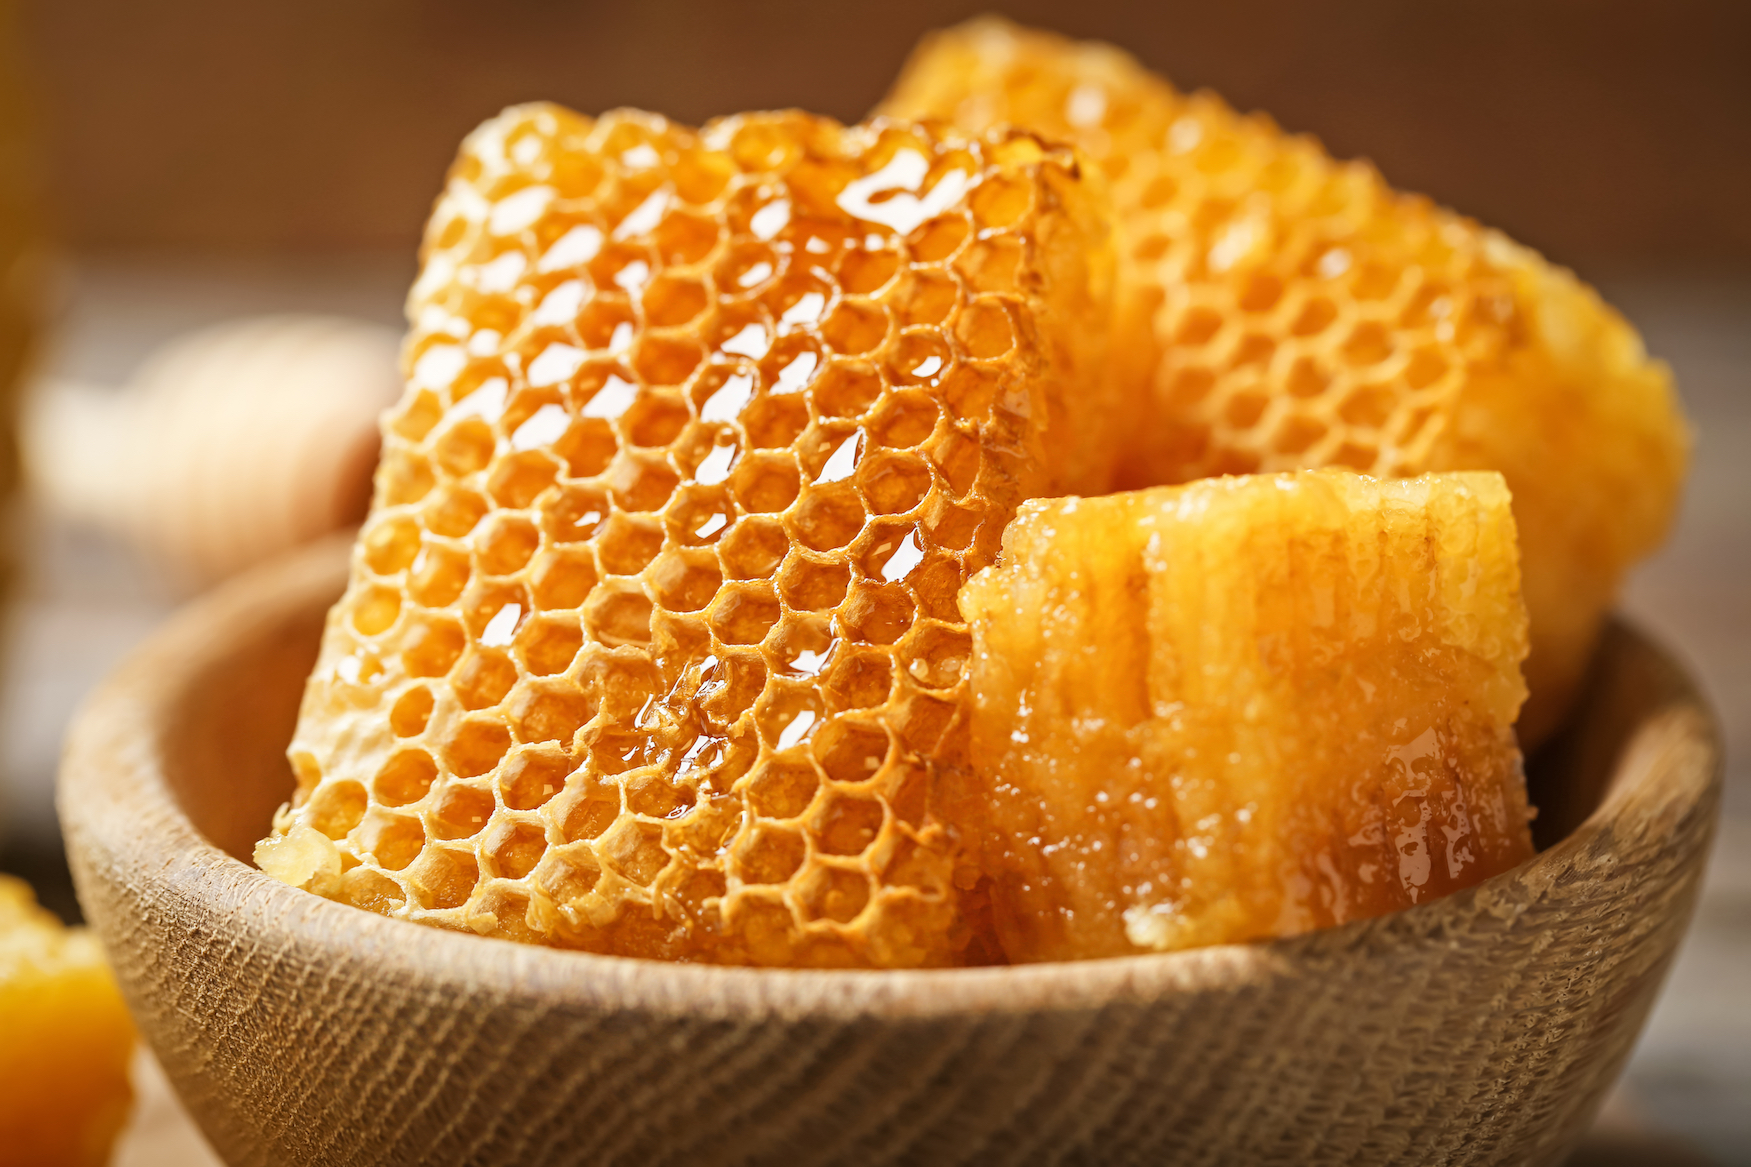 Scientists have modeled 3D porous materials after honeycombs. As a result, the experts have created a simple and fast method of developing selective filters that may ultimately be used to remove pollutants or viruses.